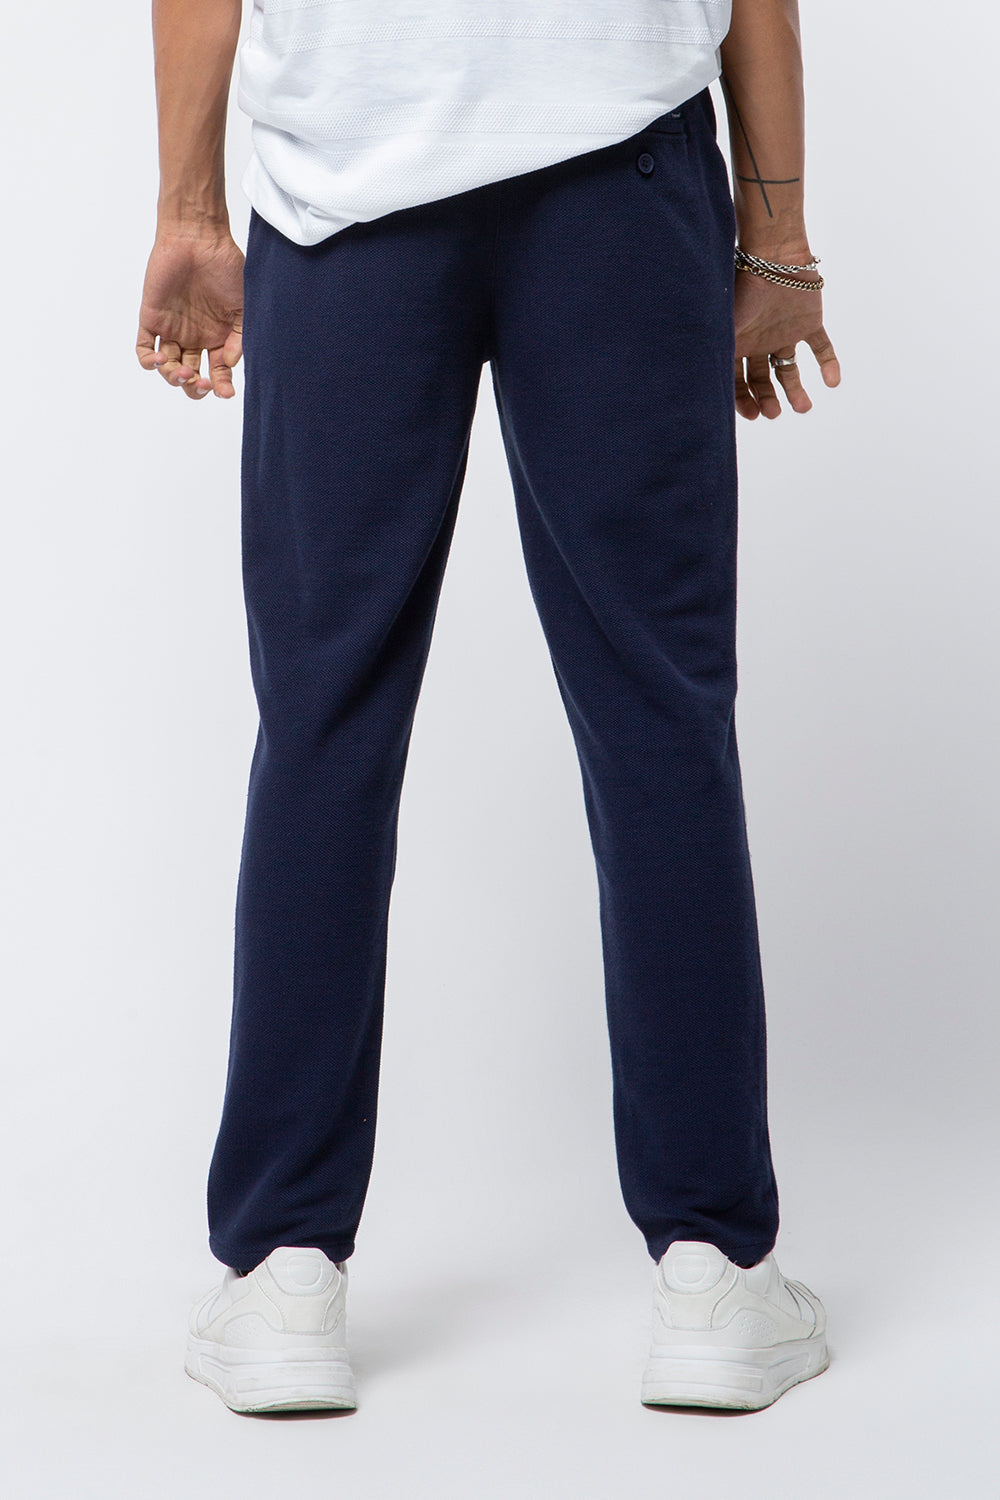 CHINO KNIT FIT NAVY